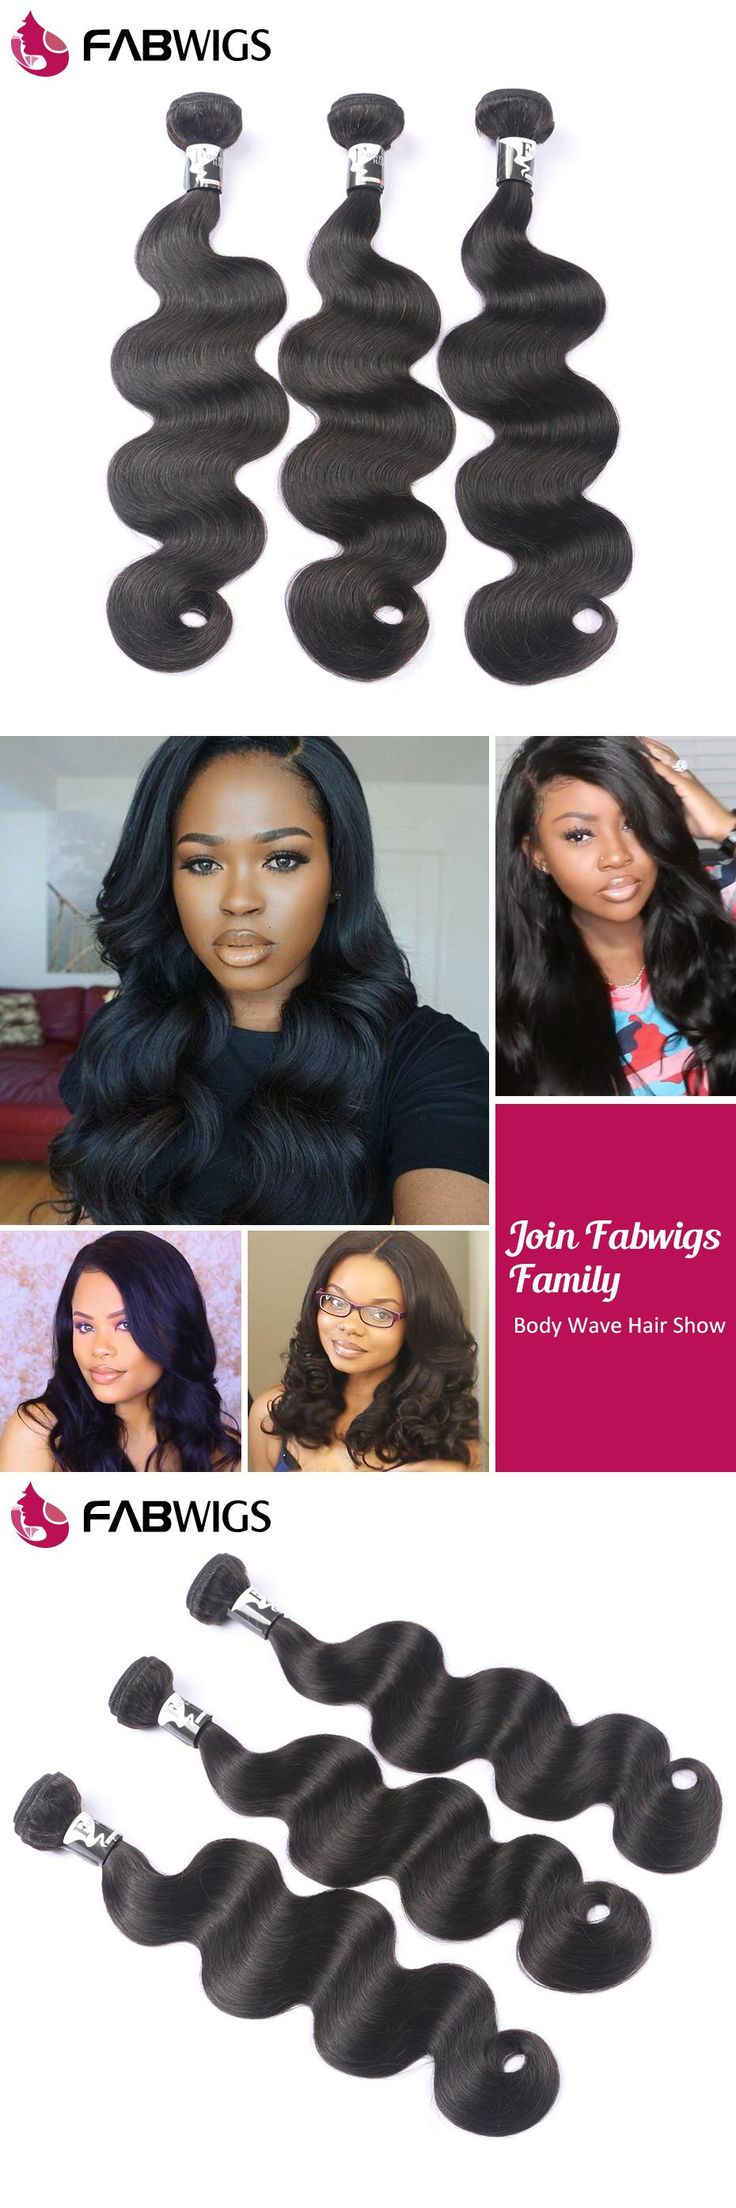 Fabwigs Brazilian Body Wave Hair Weave Bundles 100% Remy Human Hair Extensions Natural Color 1 Piece Only Suggest Buy 3 Bundles